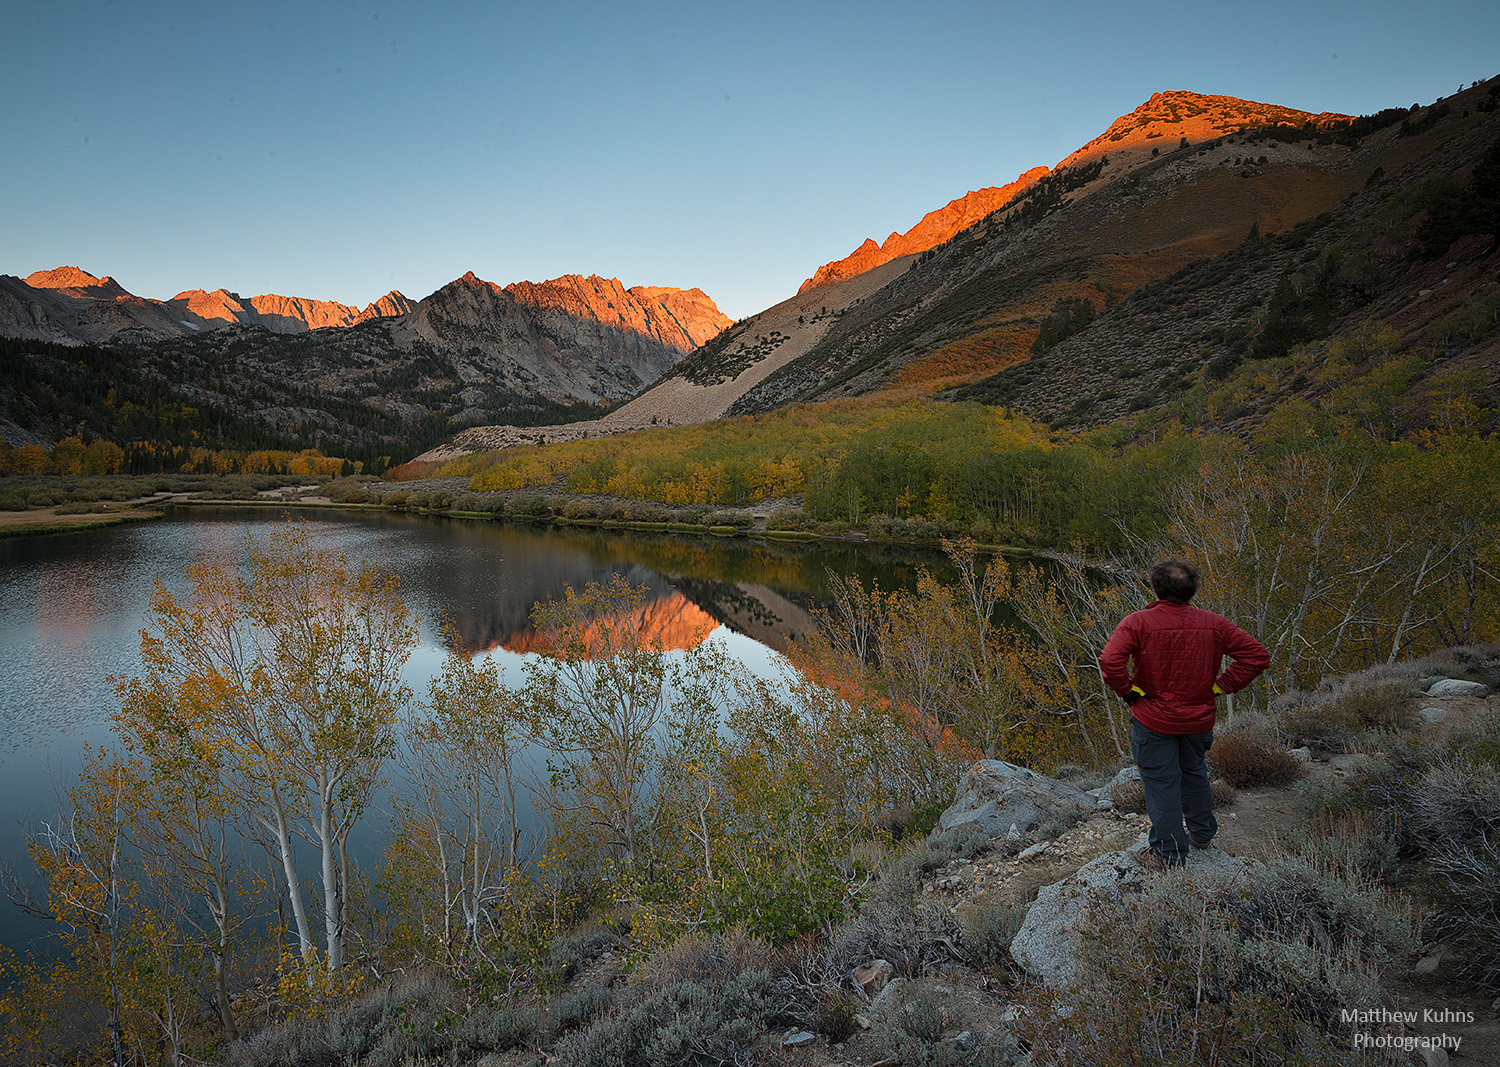 Enjoying the view and fall colors at first light at North Lake in the Sierras.